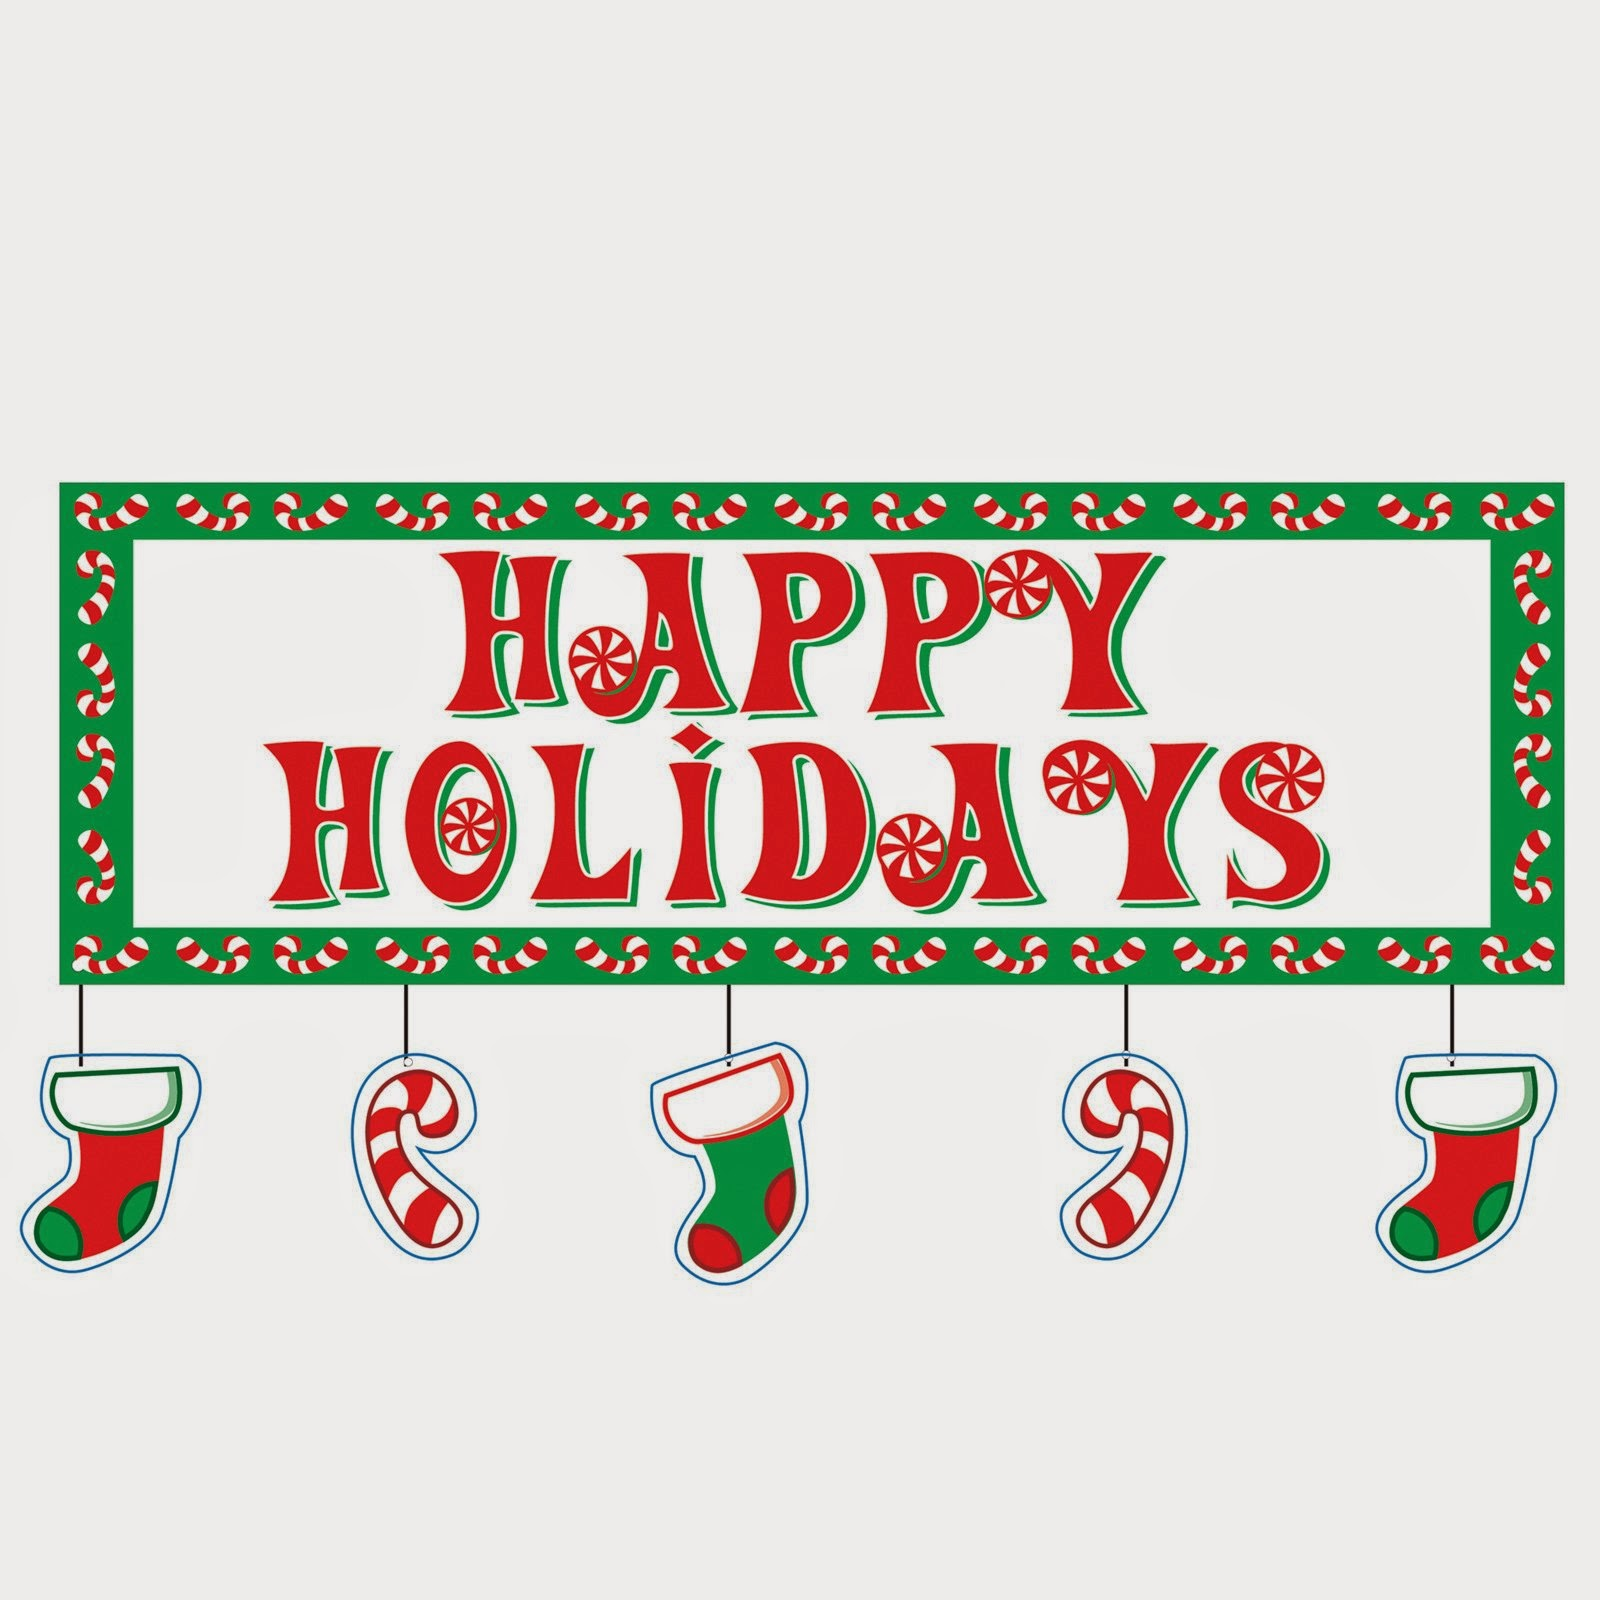 The Library will be CLOSED Dec. 24th & 25th and Dec. 31st & Jan. 1st.